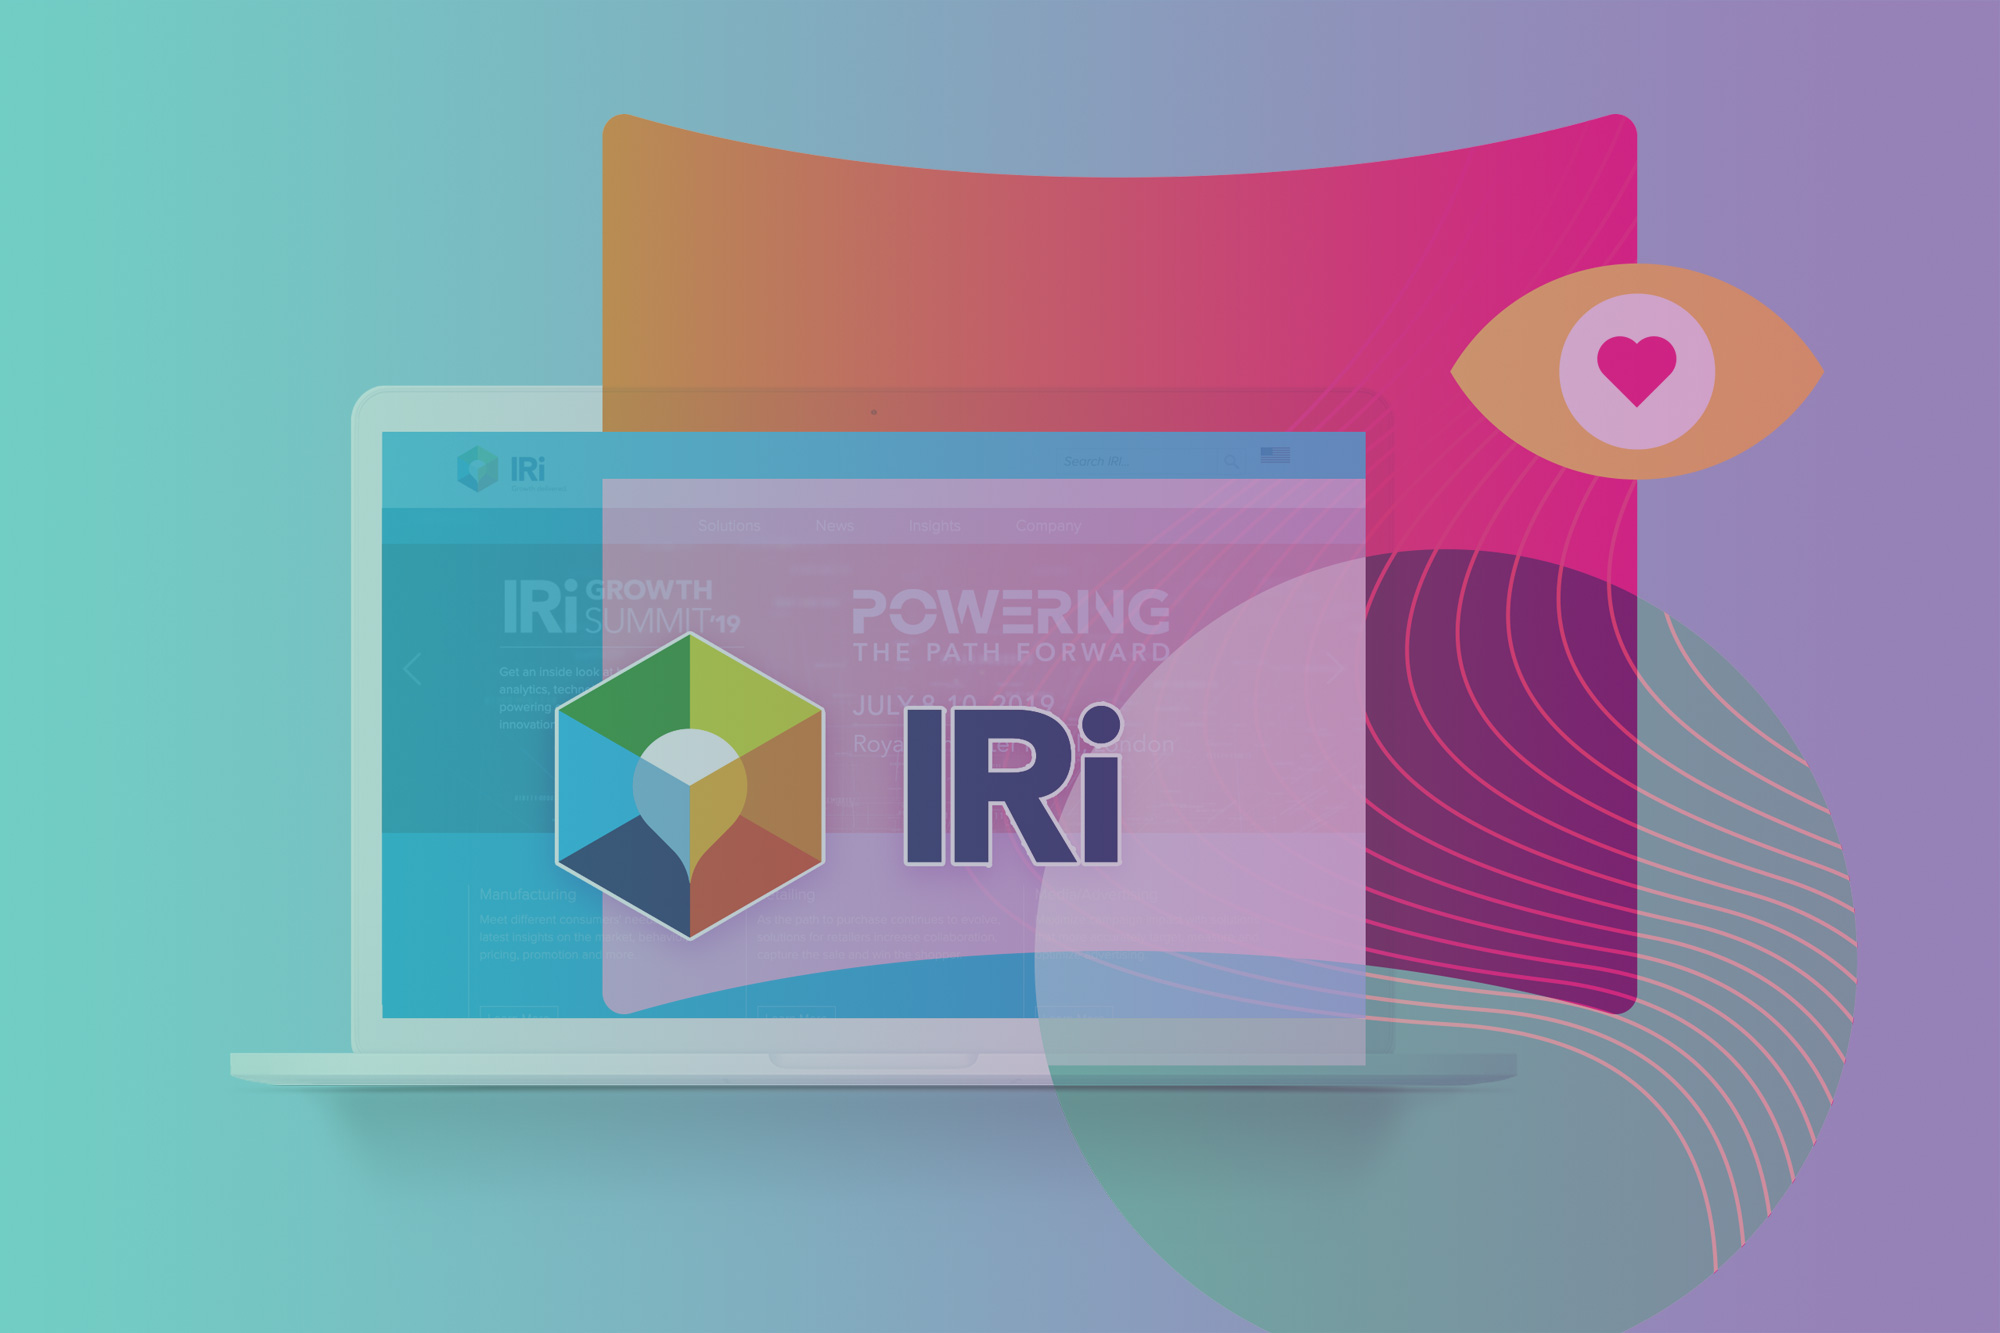 IZEA Joins Forces with IRI to launch InfluenceImpact